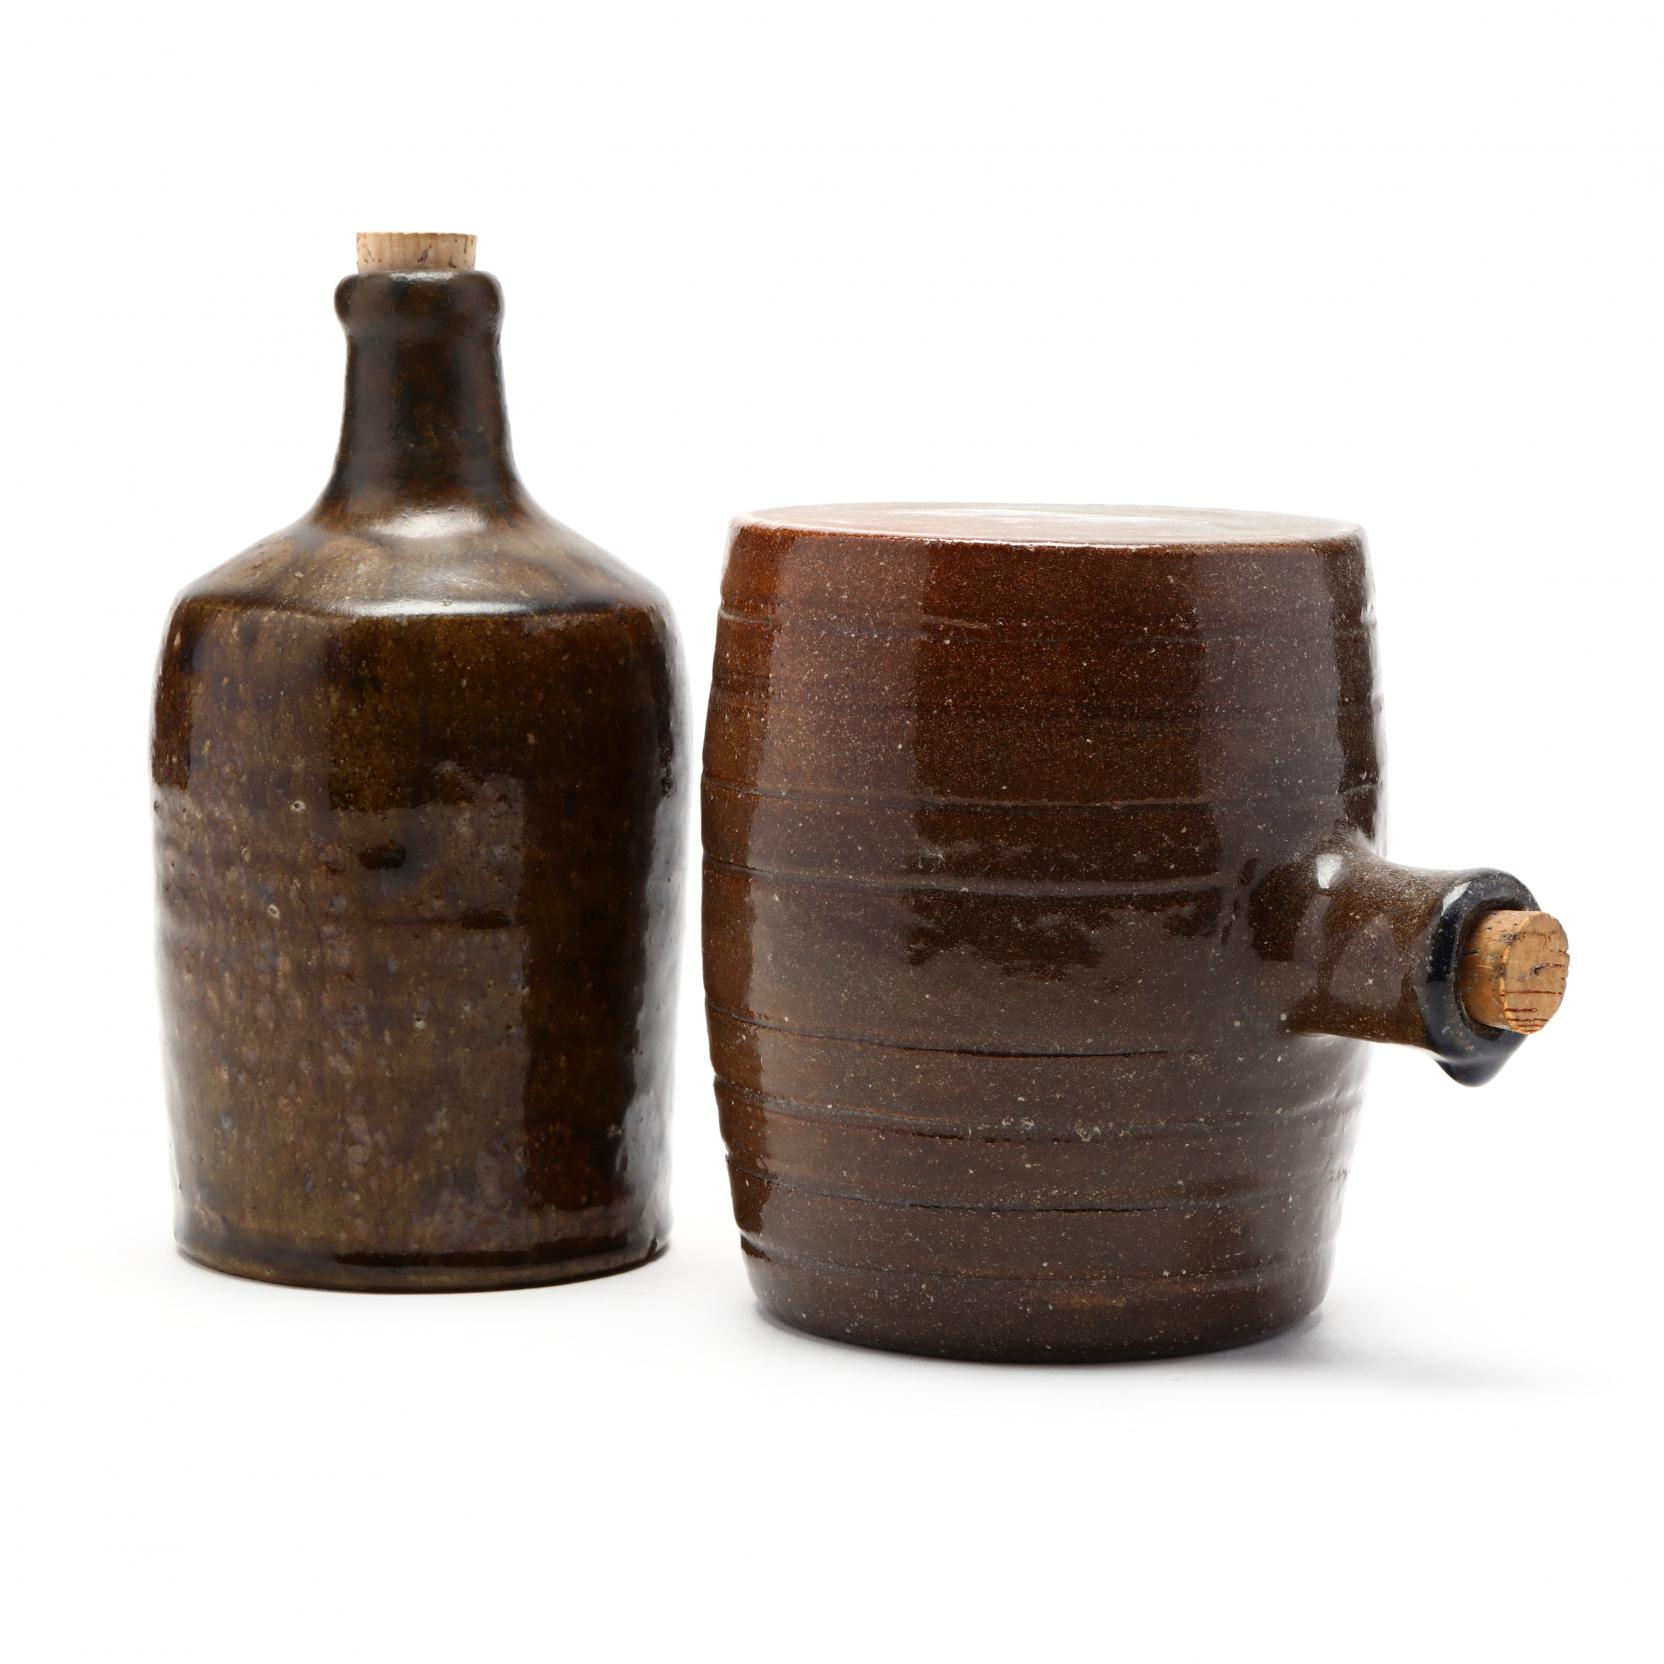 two-unusual-pottery-vessels-for-liquid-refreshment